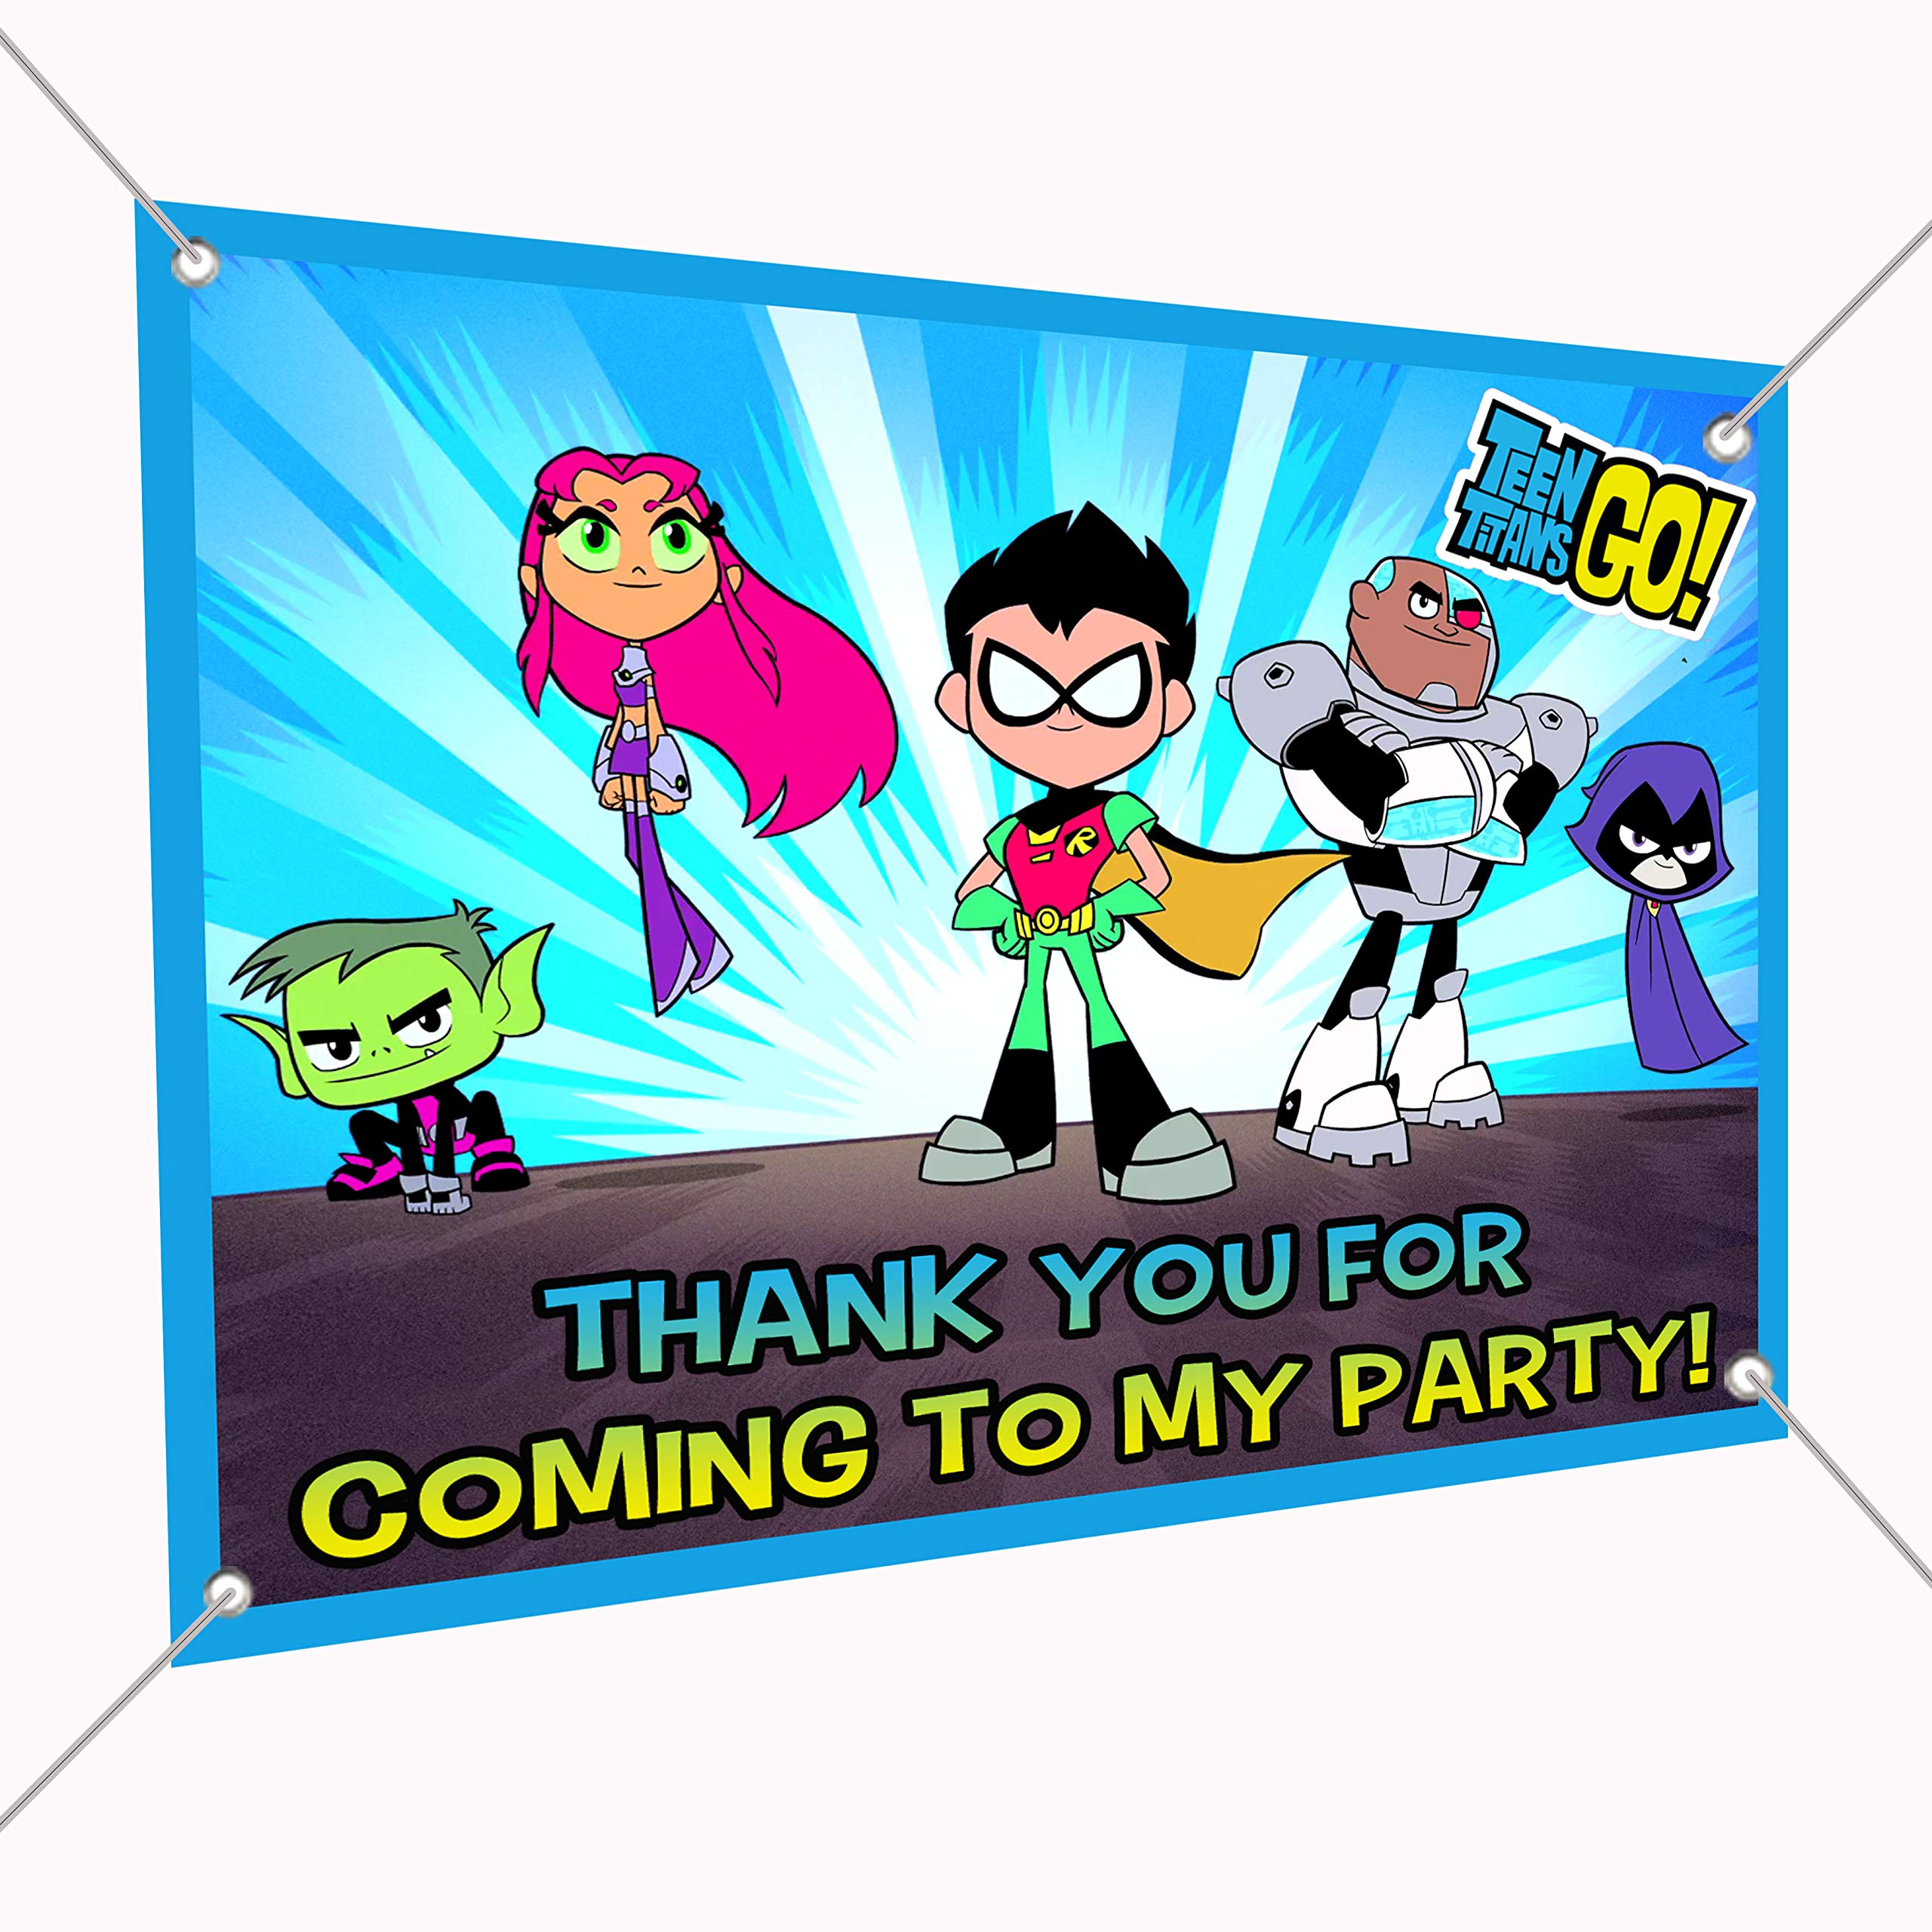 Teen Titans Go Banner Large Vinyl Indoor or Outdoor Banner Sign Poster Backdrop, party favor decoration, 30'' x 24'', 2.5' x 2', Robin, Starfire, Cyborg, Raven, Beast Boy Super Heroes